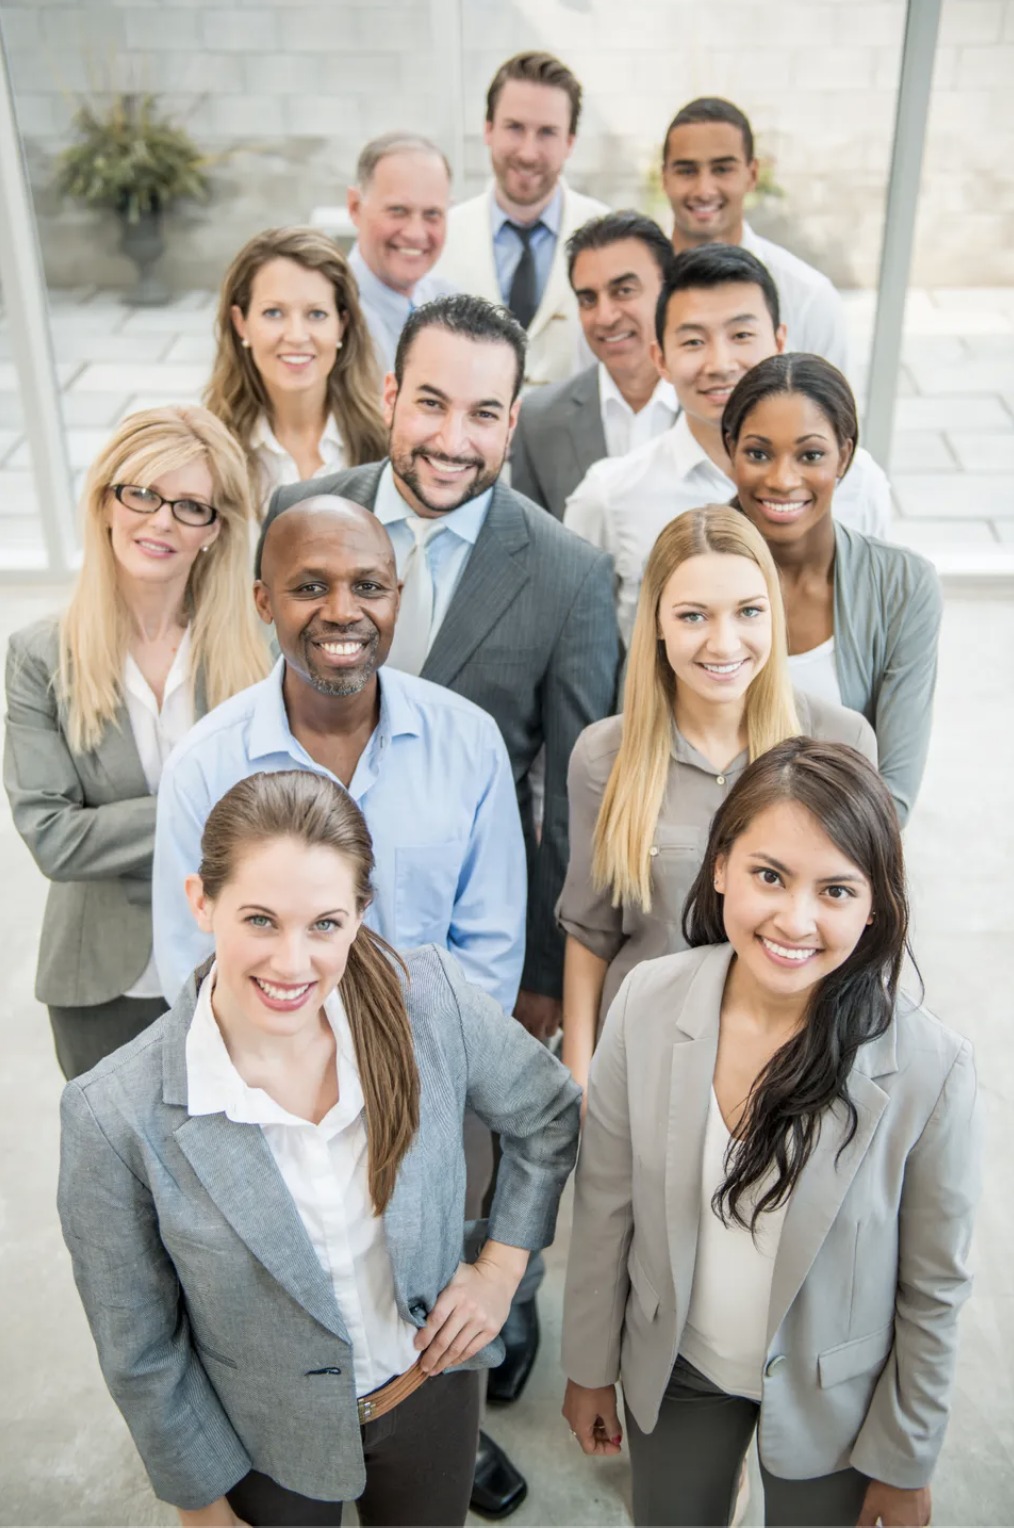 A multi-ethnic group of business professionals are standing together in a group and are smiling while looking at the camera. Simu Liu is in peeping out in the back.